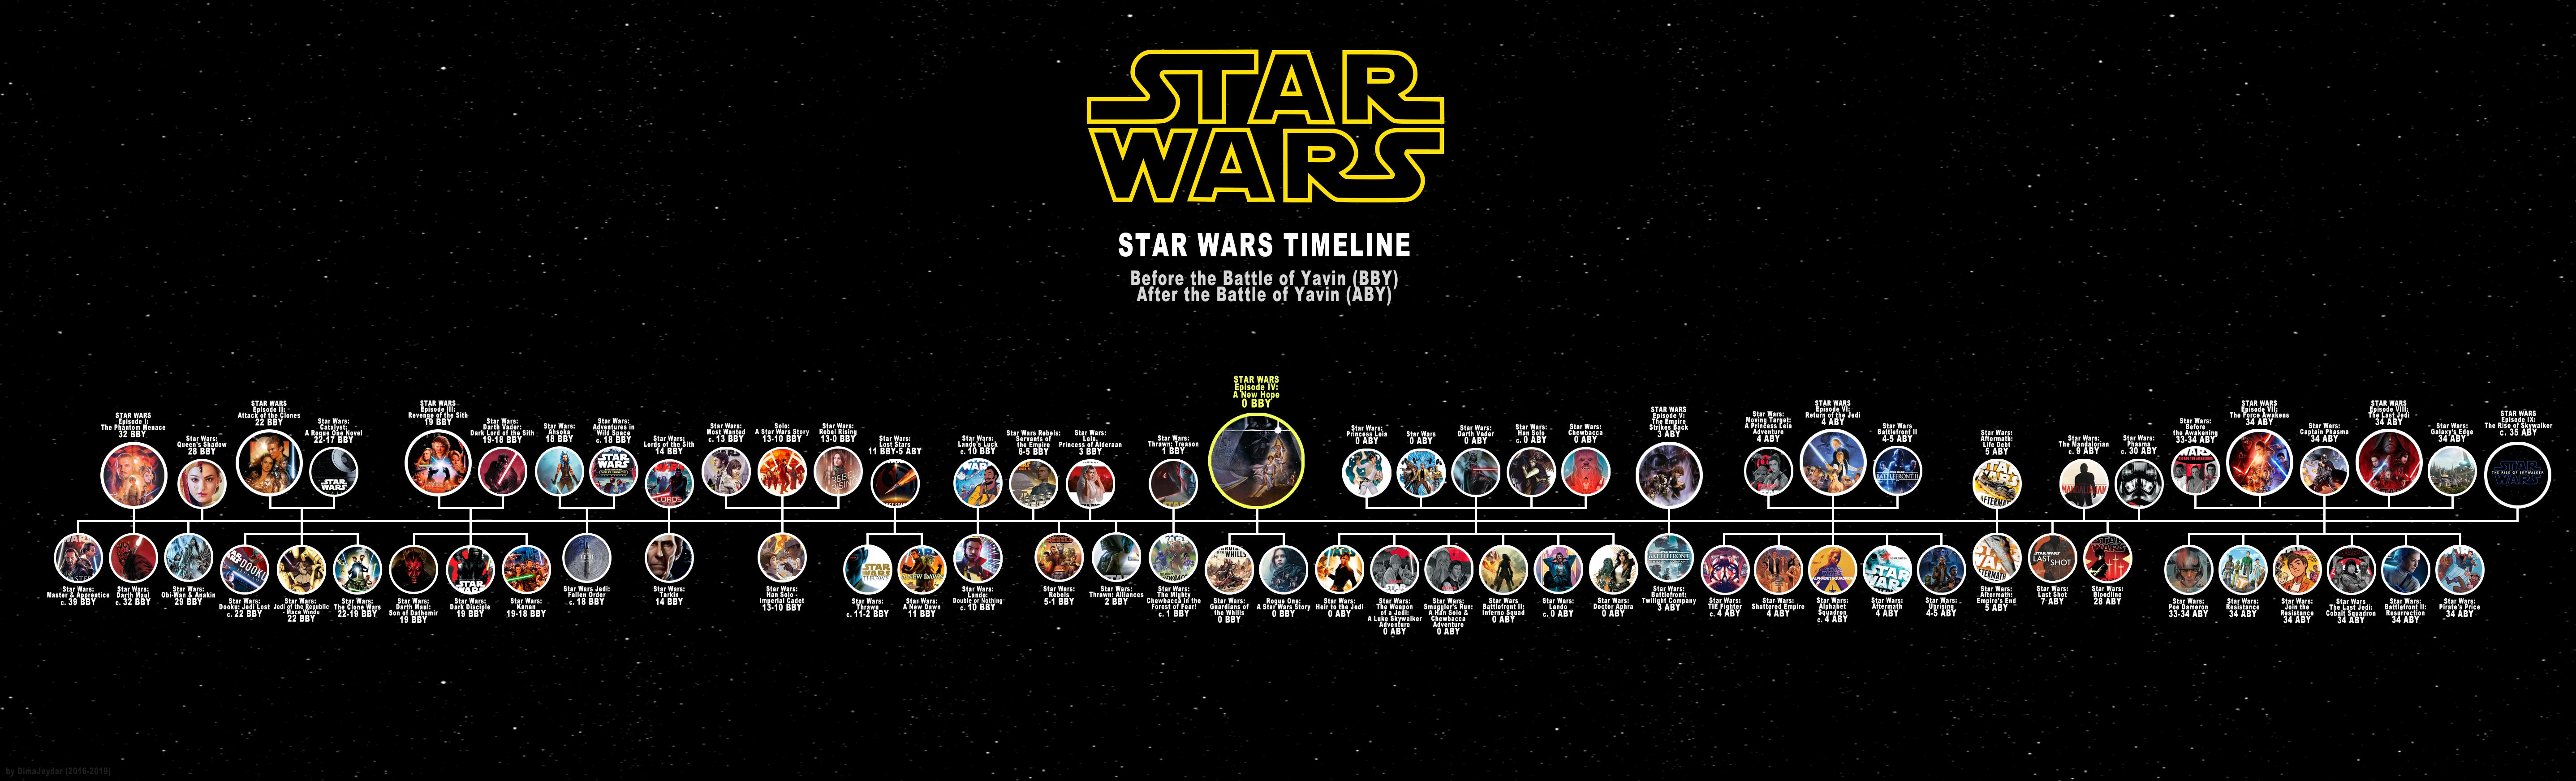 I Need Help Finding The Timeline Of Star Wars Canon Fandom